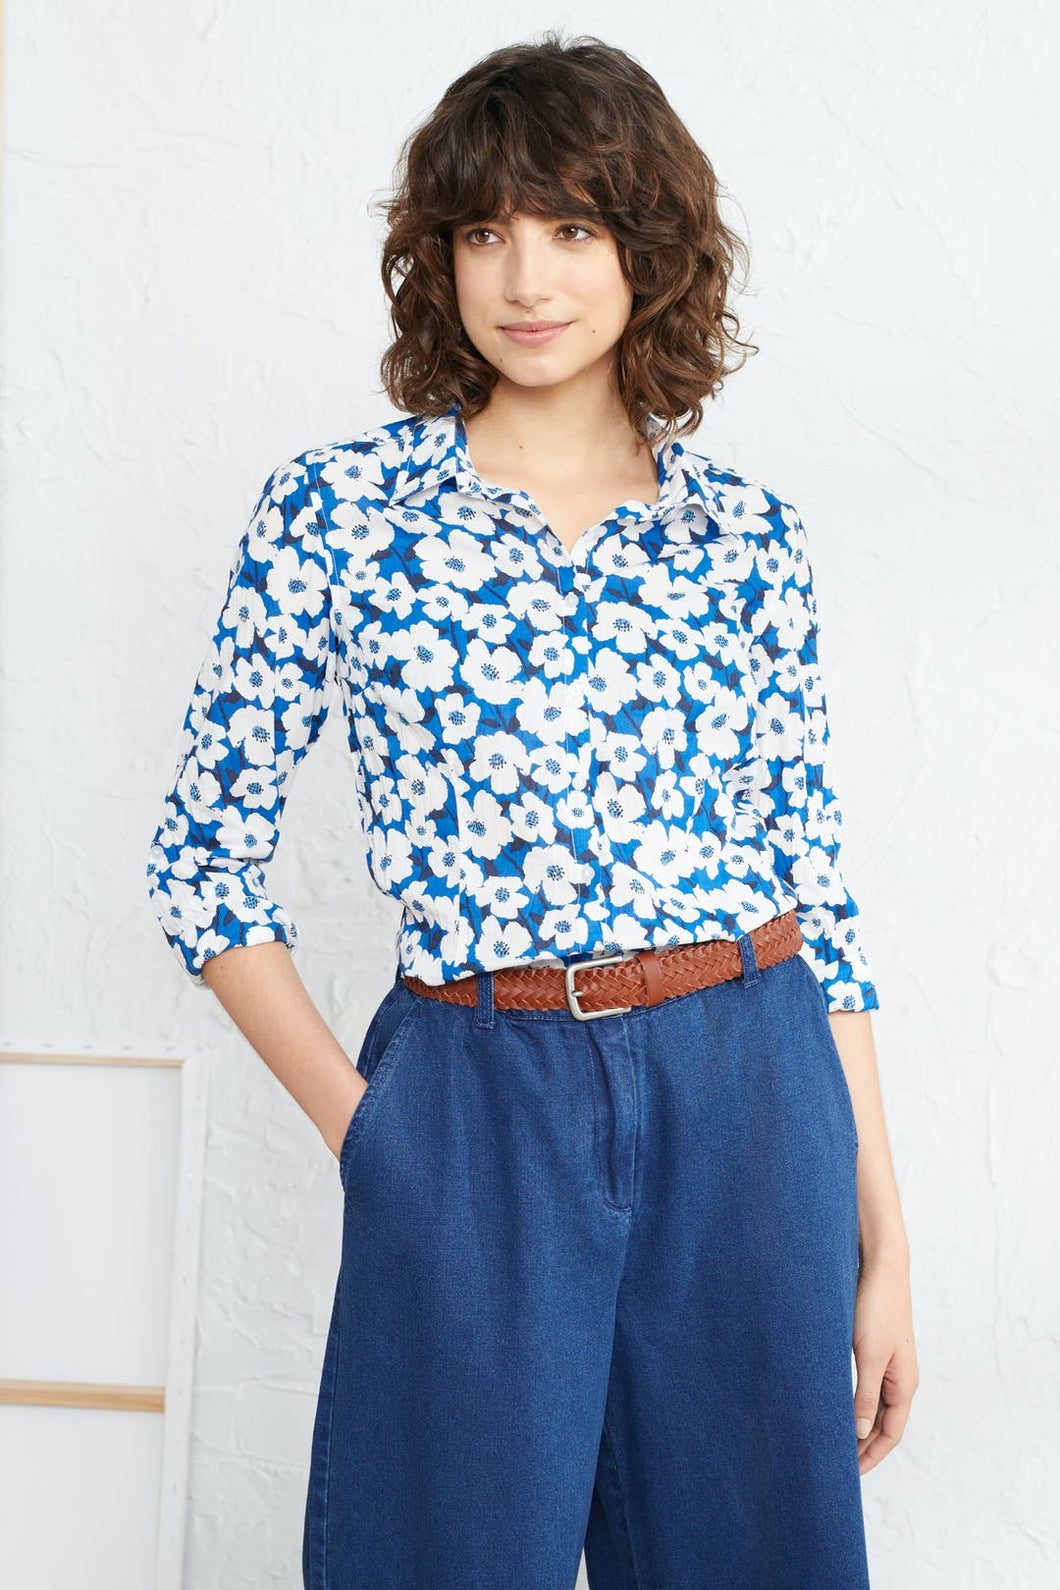 Seasalt Larissa shirt in Mallow flower cargo - CW CW